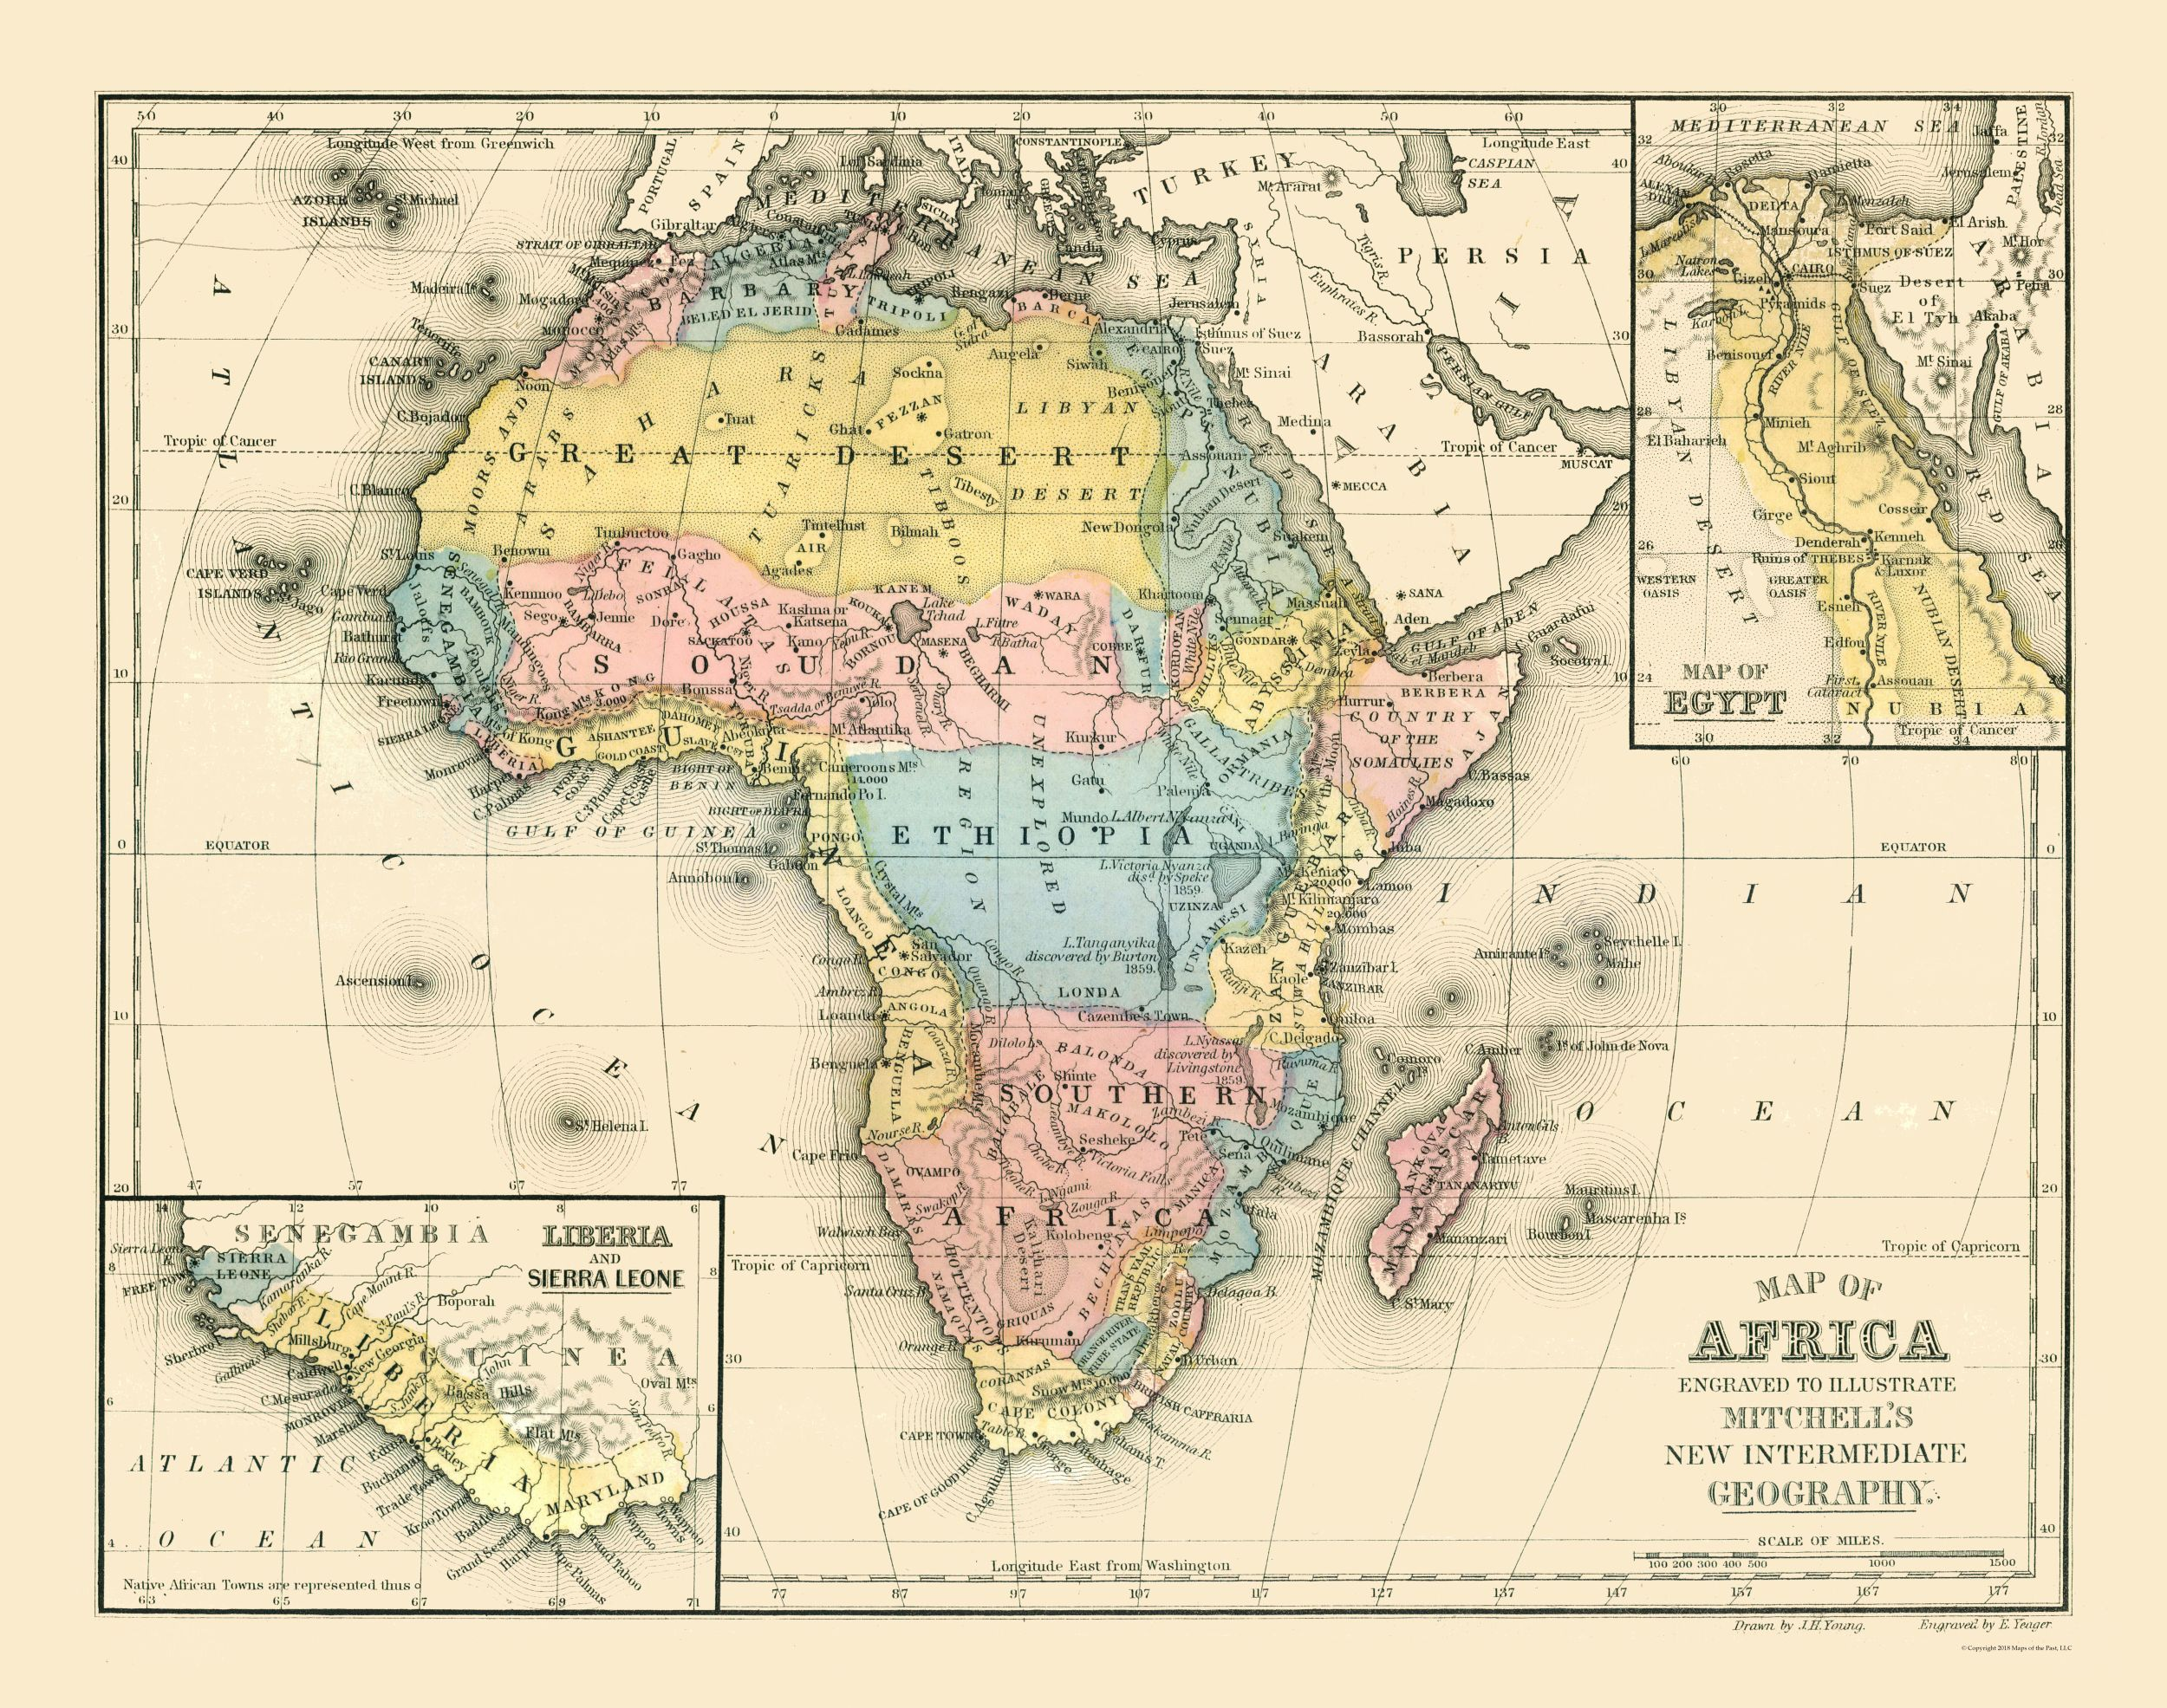 Old International Maps Africa Mitchell 1869 29 17 X 23